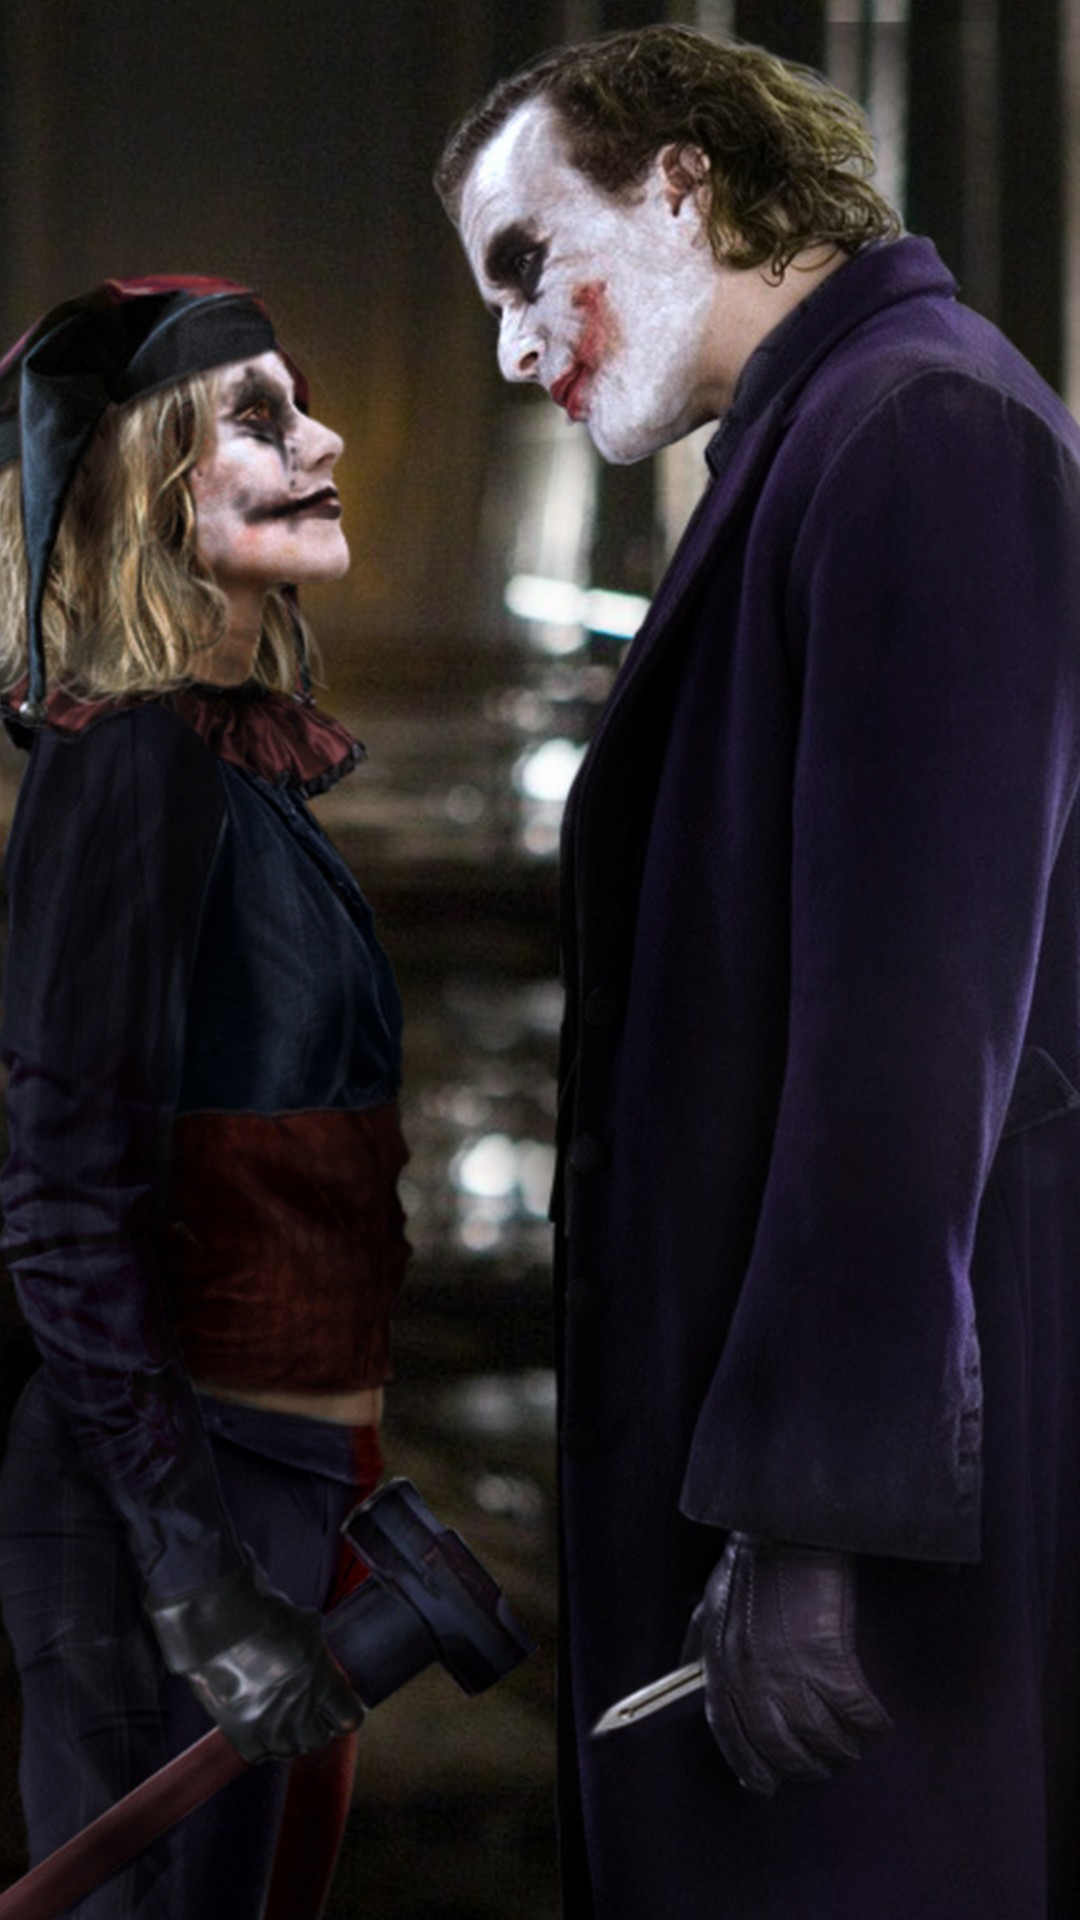 Wallpapers Harley Quinn and Joker Android